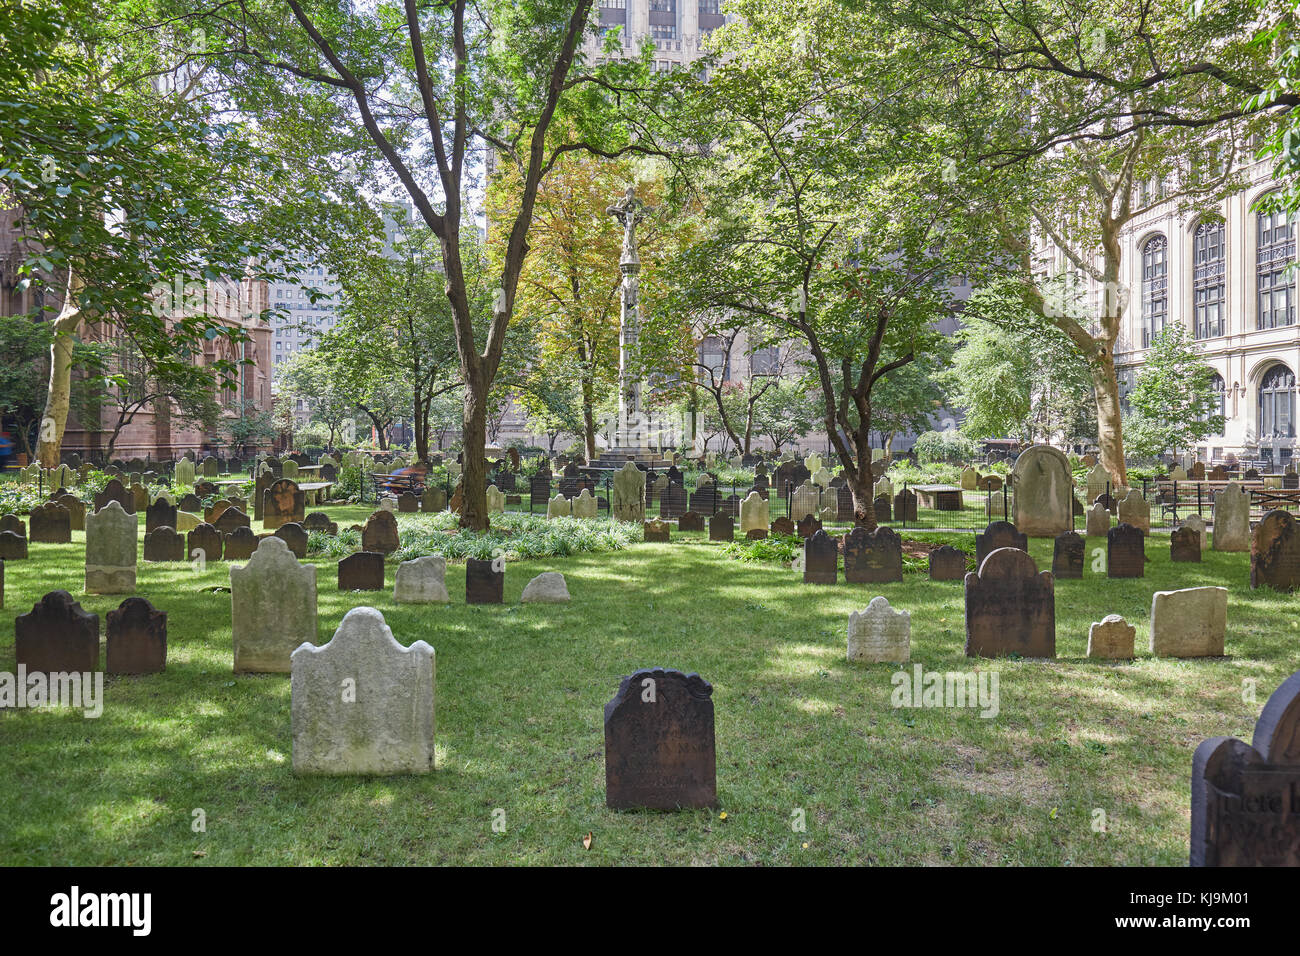 Trinity Church cemetery with green grass in a sunny day in New York - Stock Image